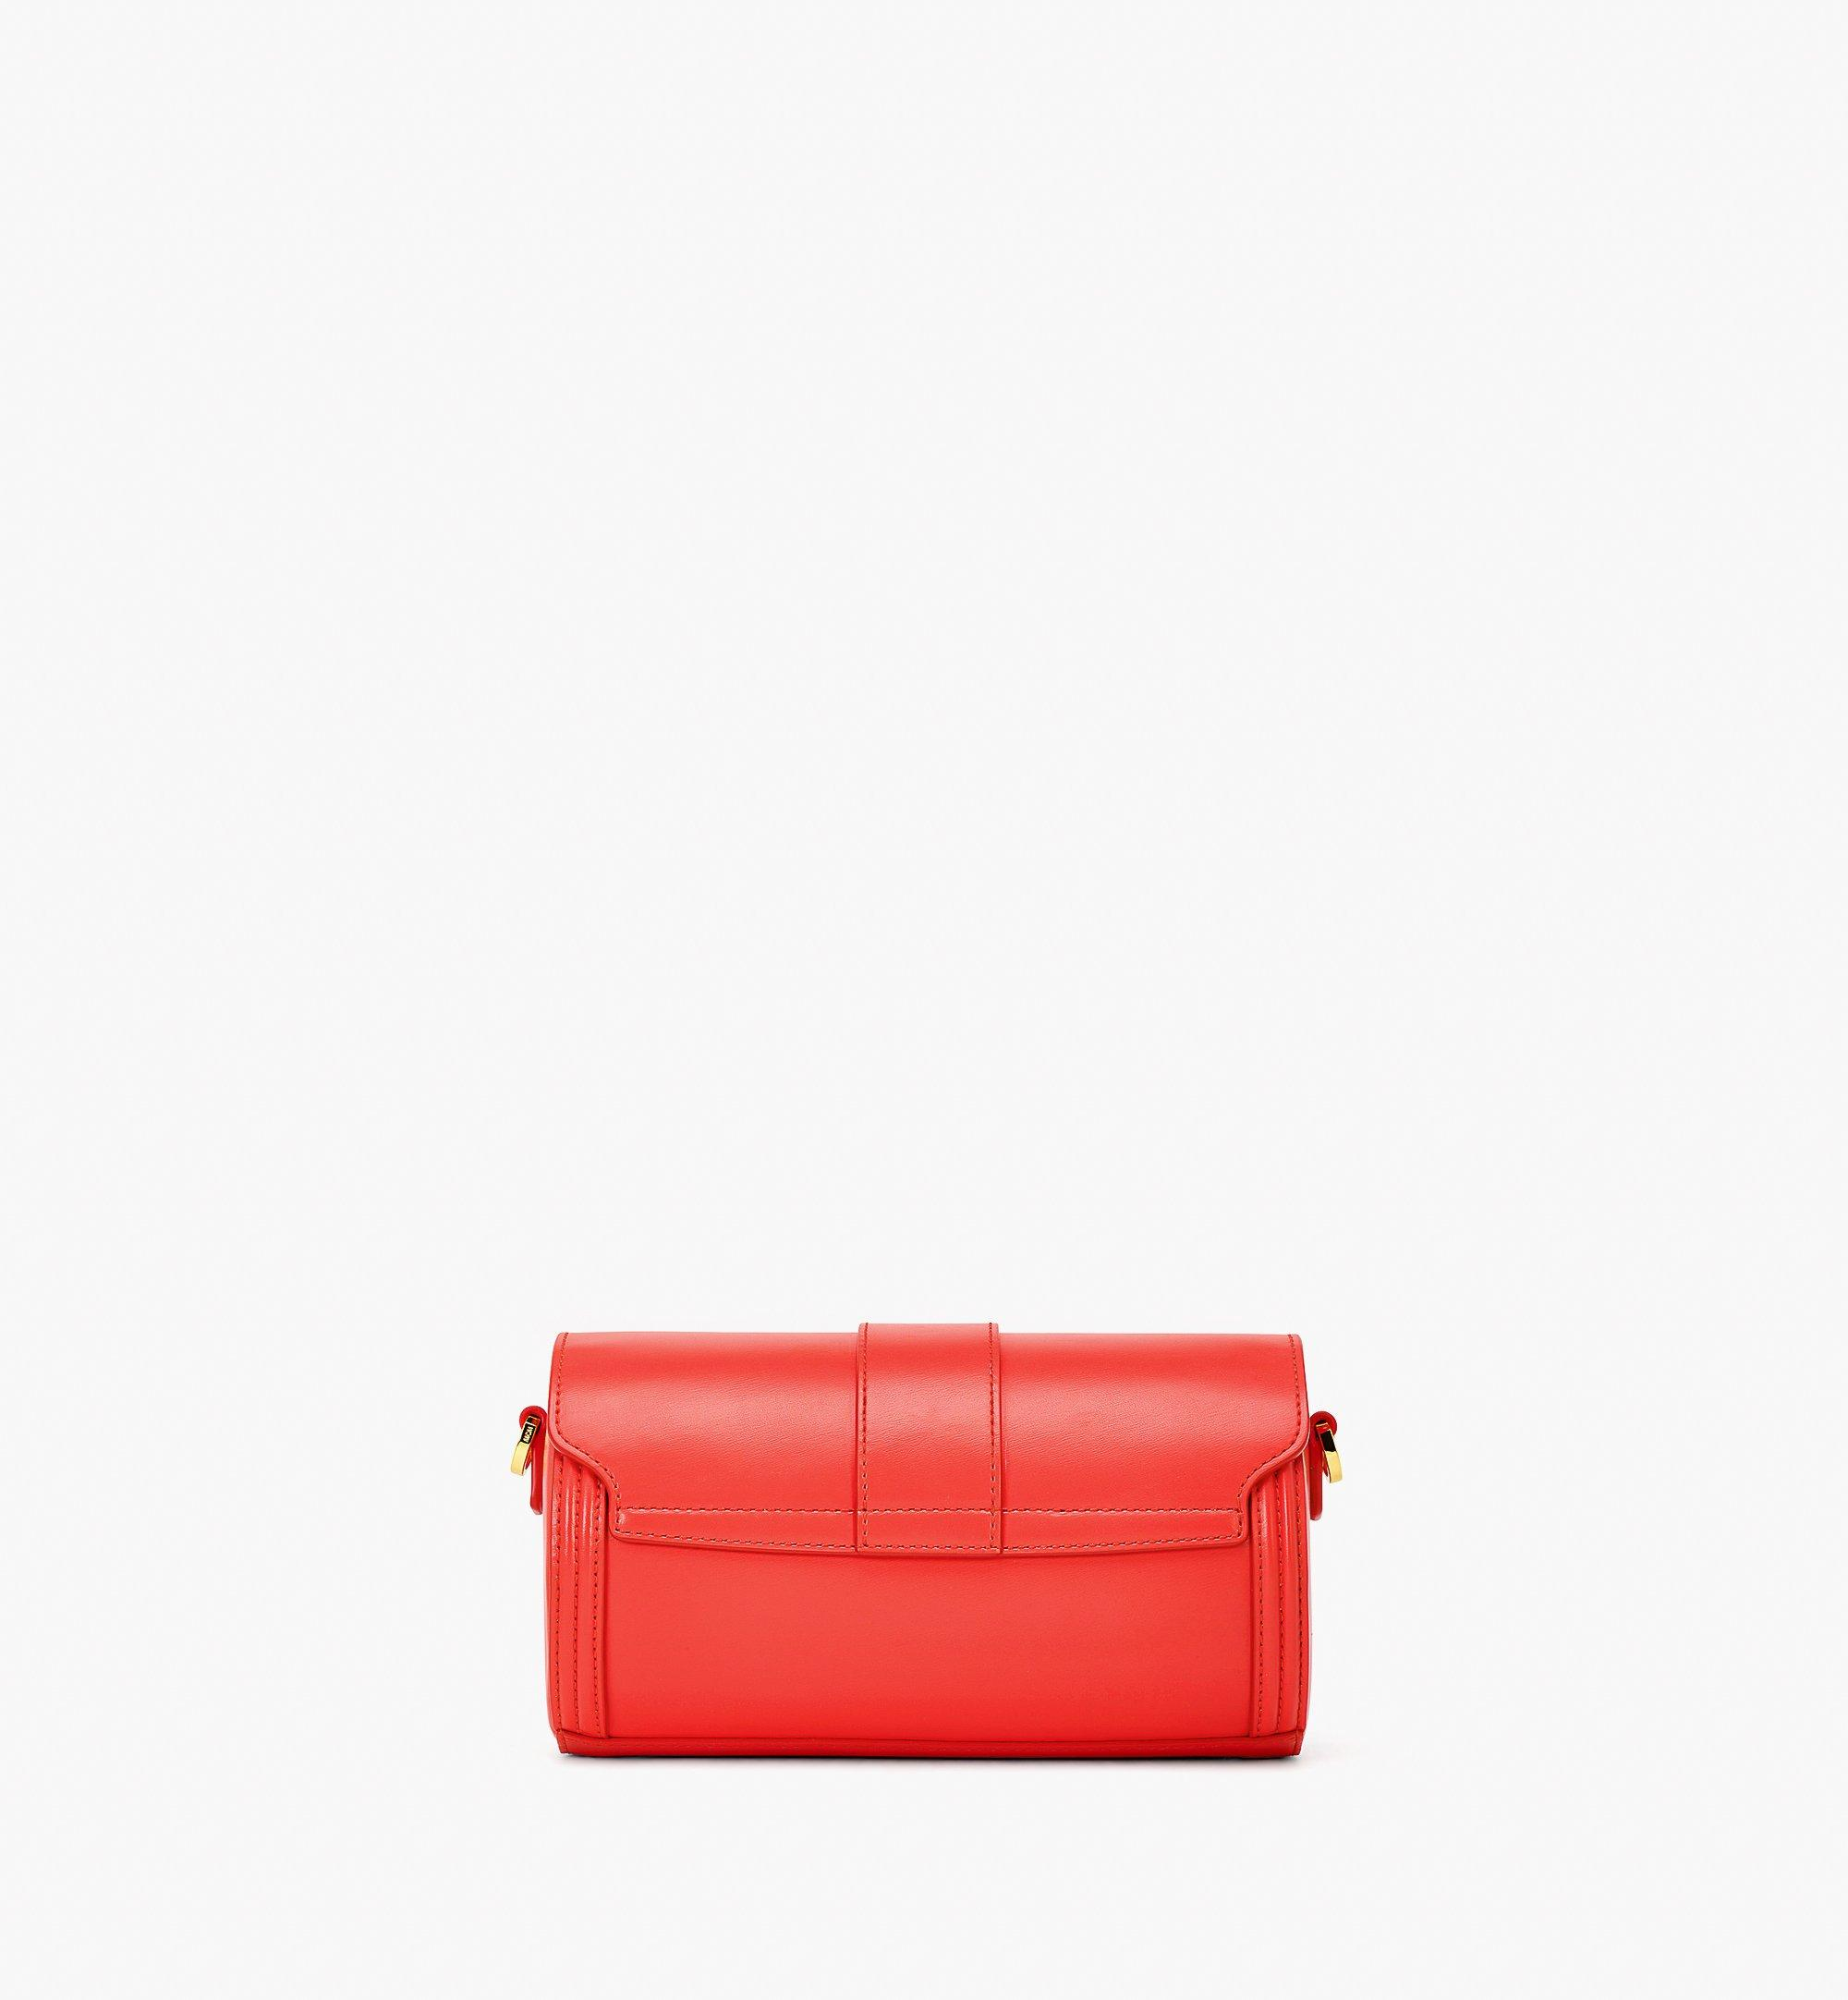 MCM Tracy Crossbody in Embossed Spanish Leather Red MWRBSXT02R8001 Alternate View 3